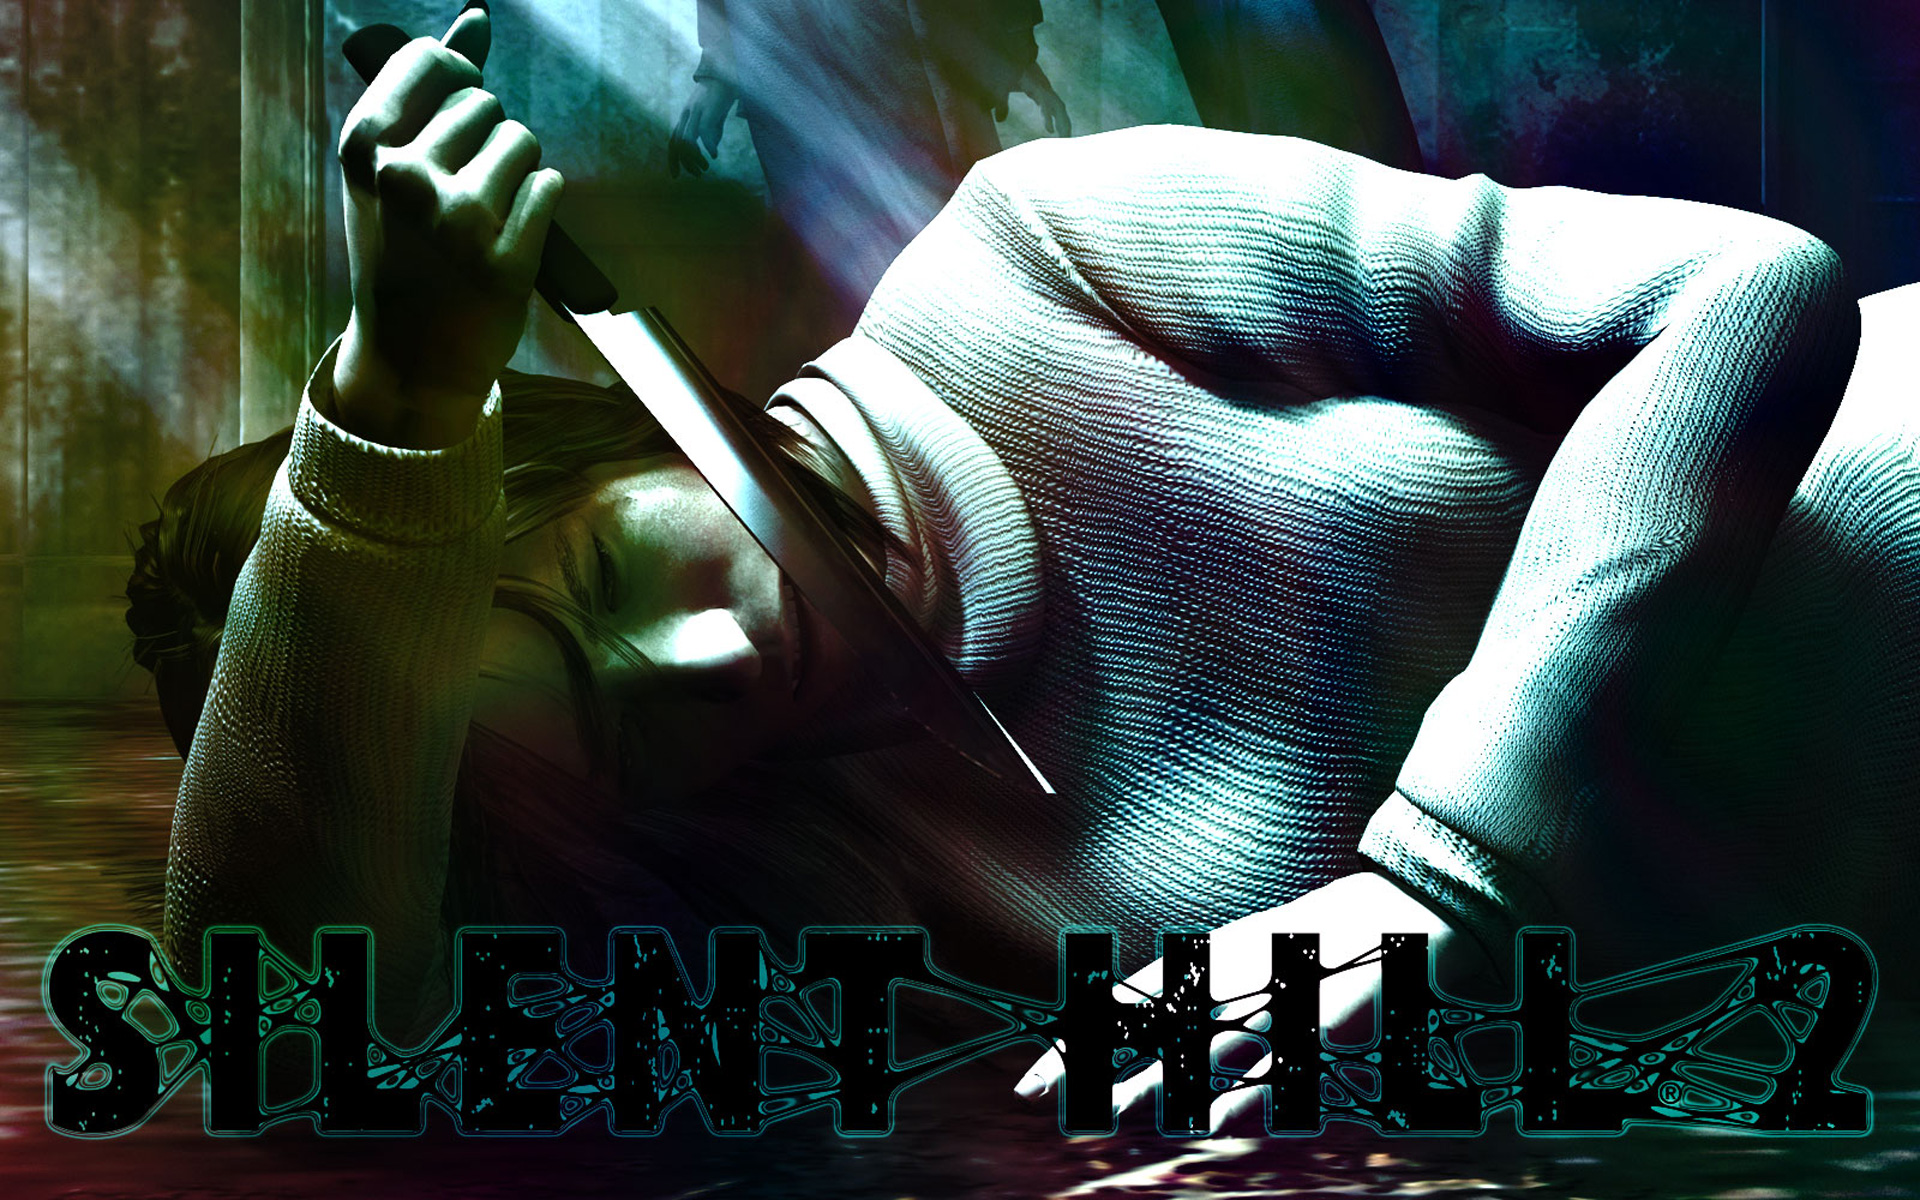 Free Silent Hill 2 Wallpaper in 1920x1200